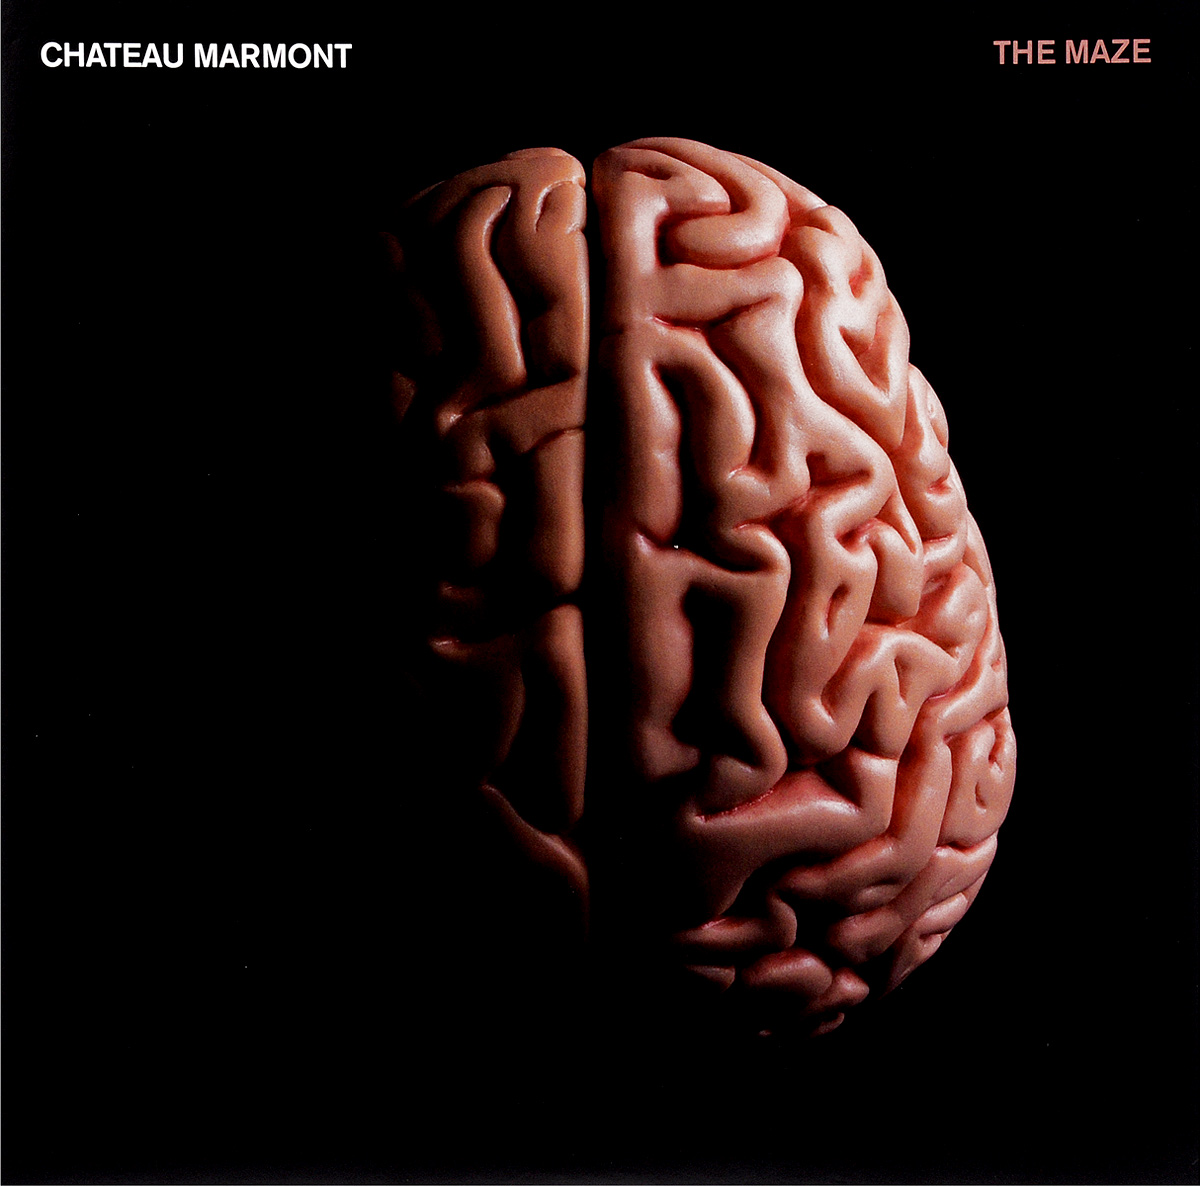 Chateau Marmont Chateau Marmont. The Maze (2 LP) часы nixon corporal ss all black